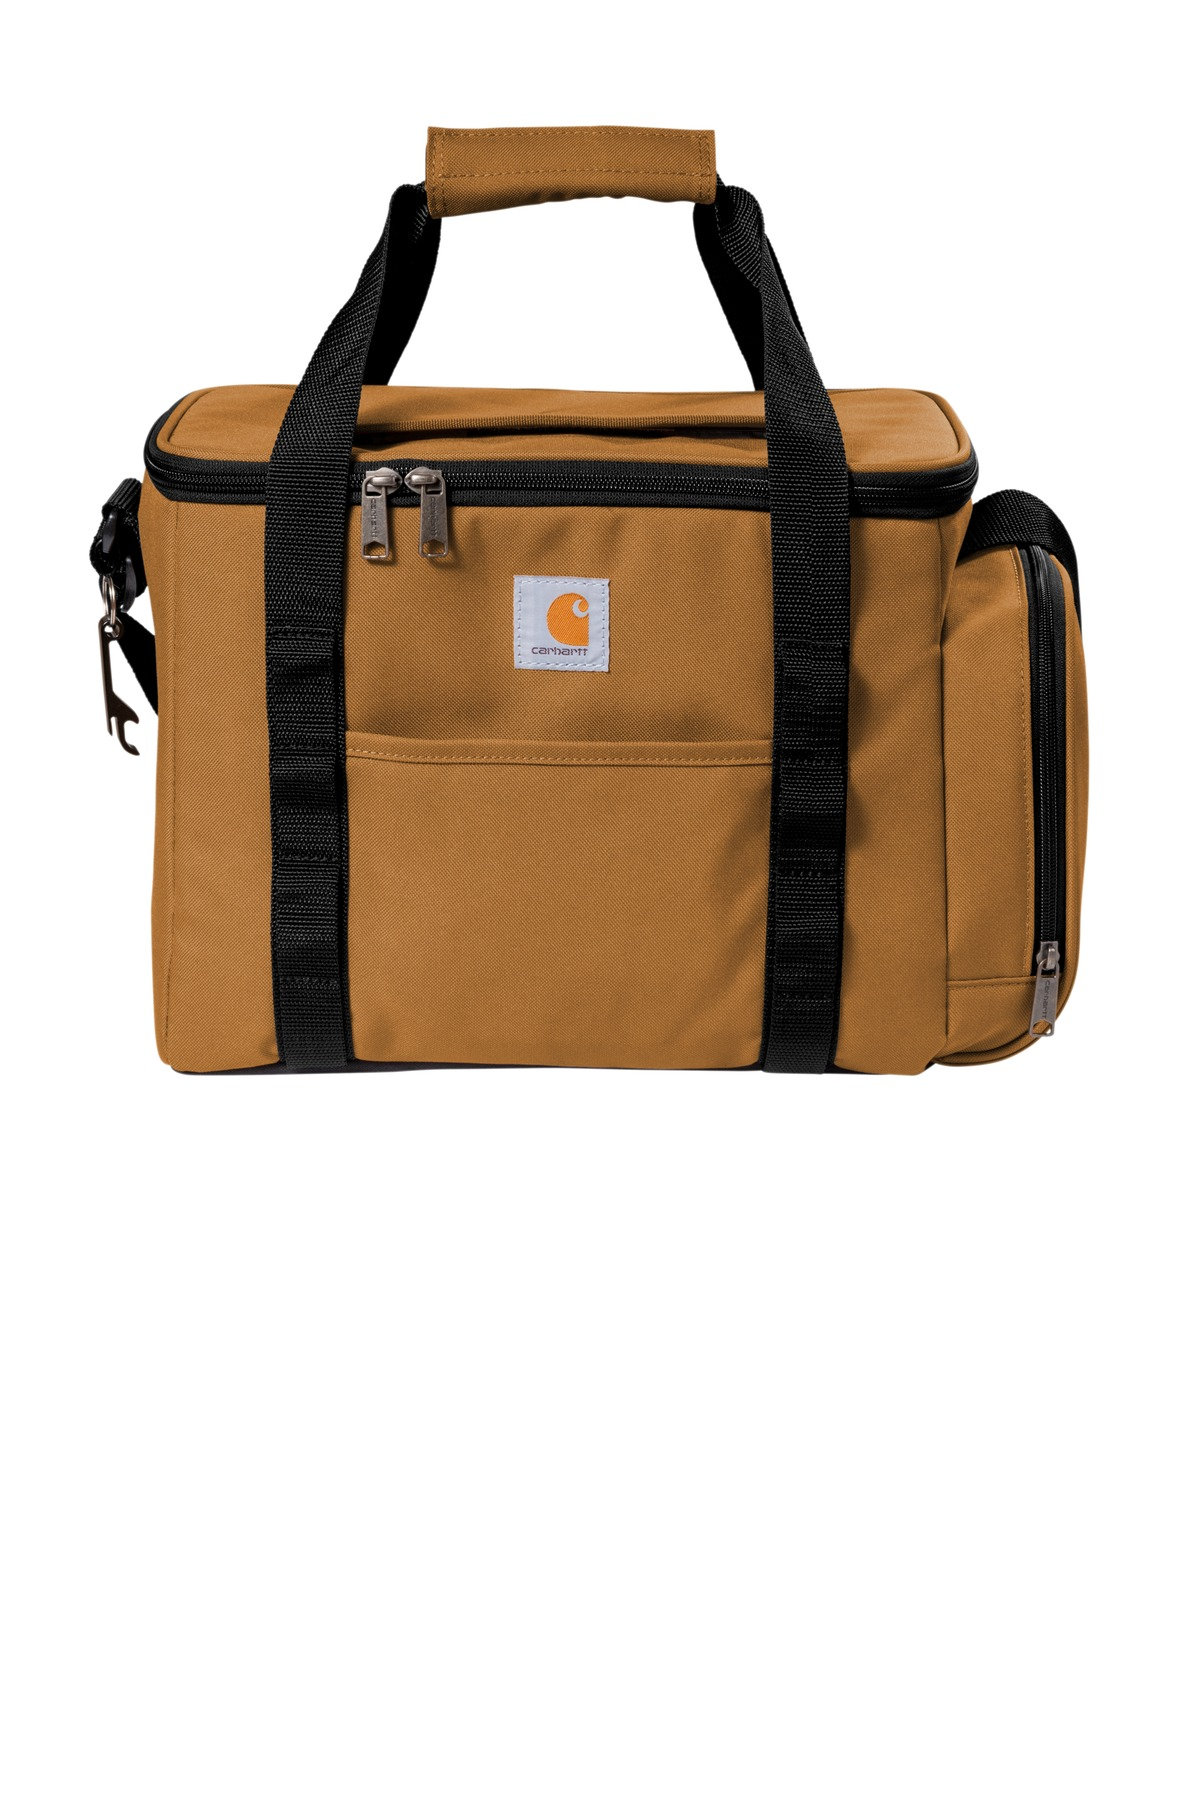 Carhartt ®  Duffel 36-Can Cooler. CT89520701 - Carhartt Brown